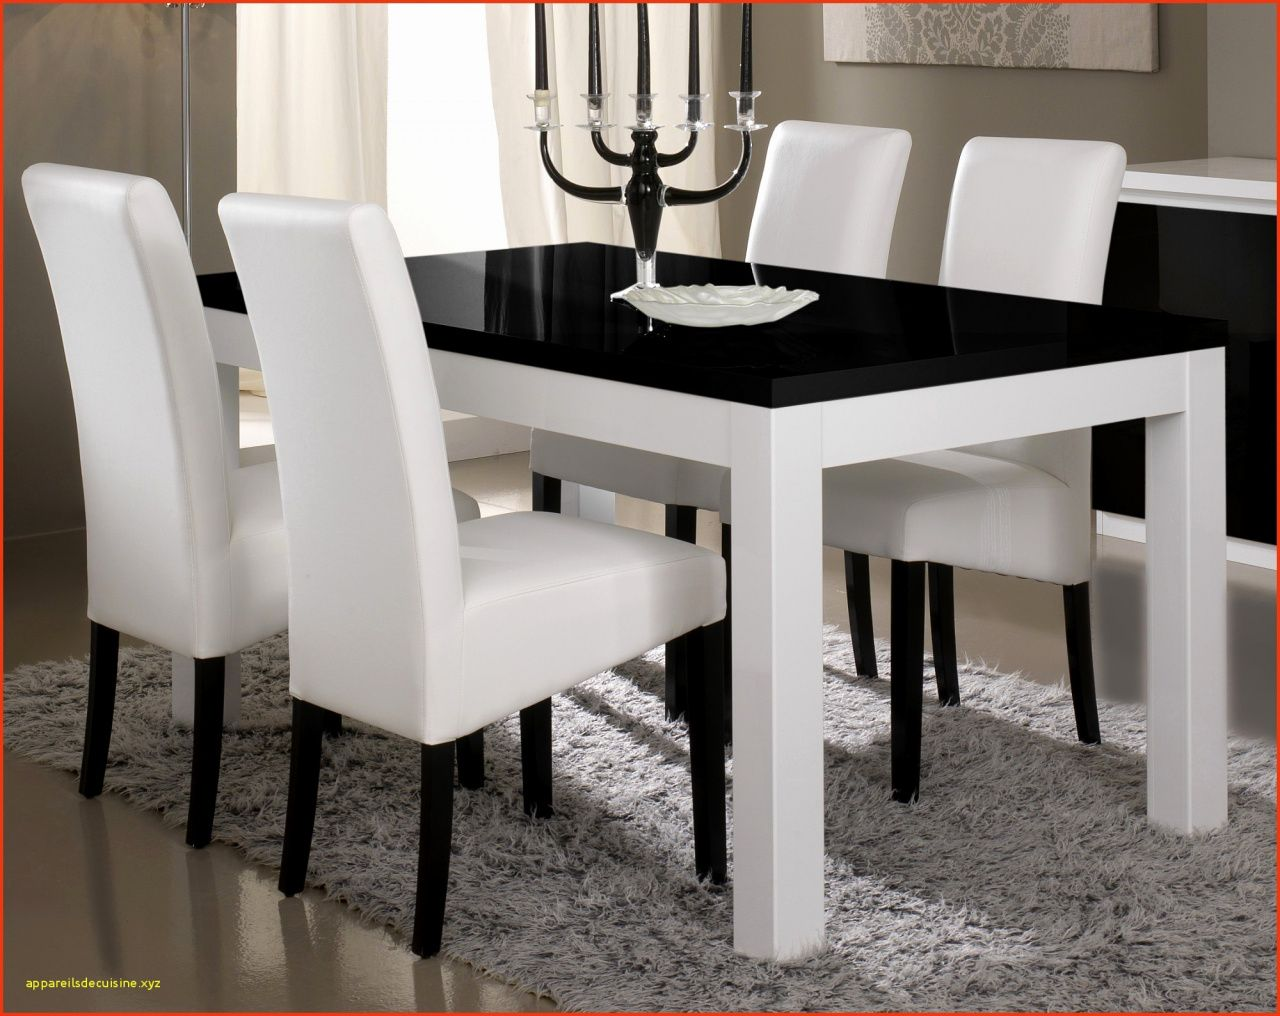 77 Chaises Salle A Manger But Organic Dining Room White Dining Table Dining Room Design